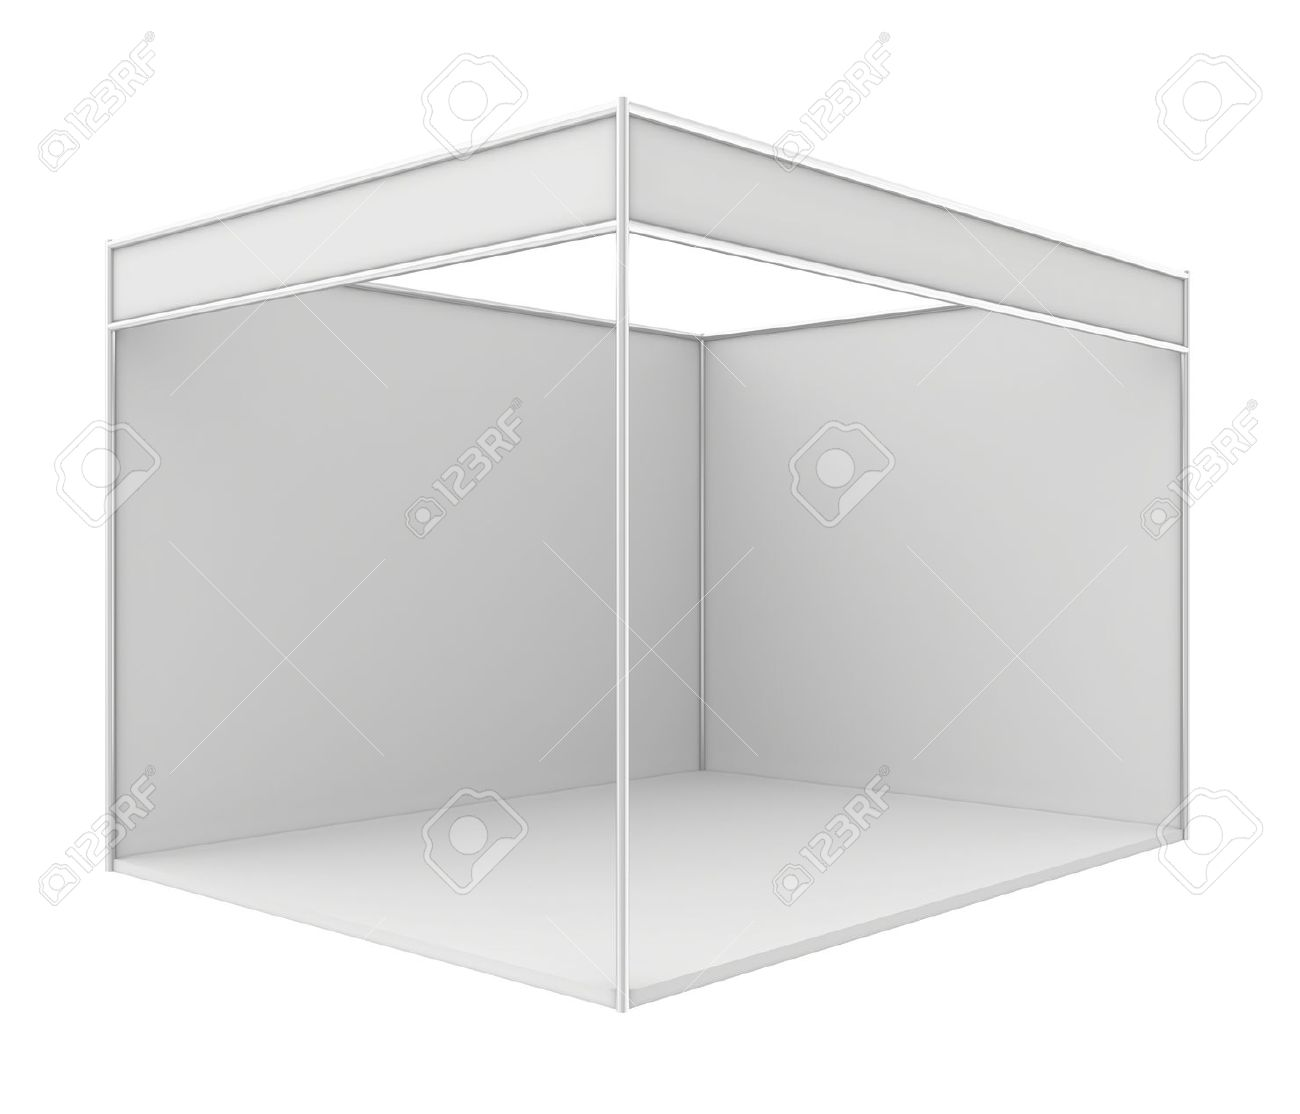 Exhibition Stand White : Blank trade exhibition stand d render isolated on white stock